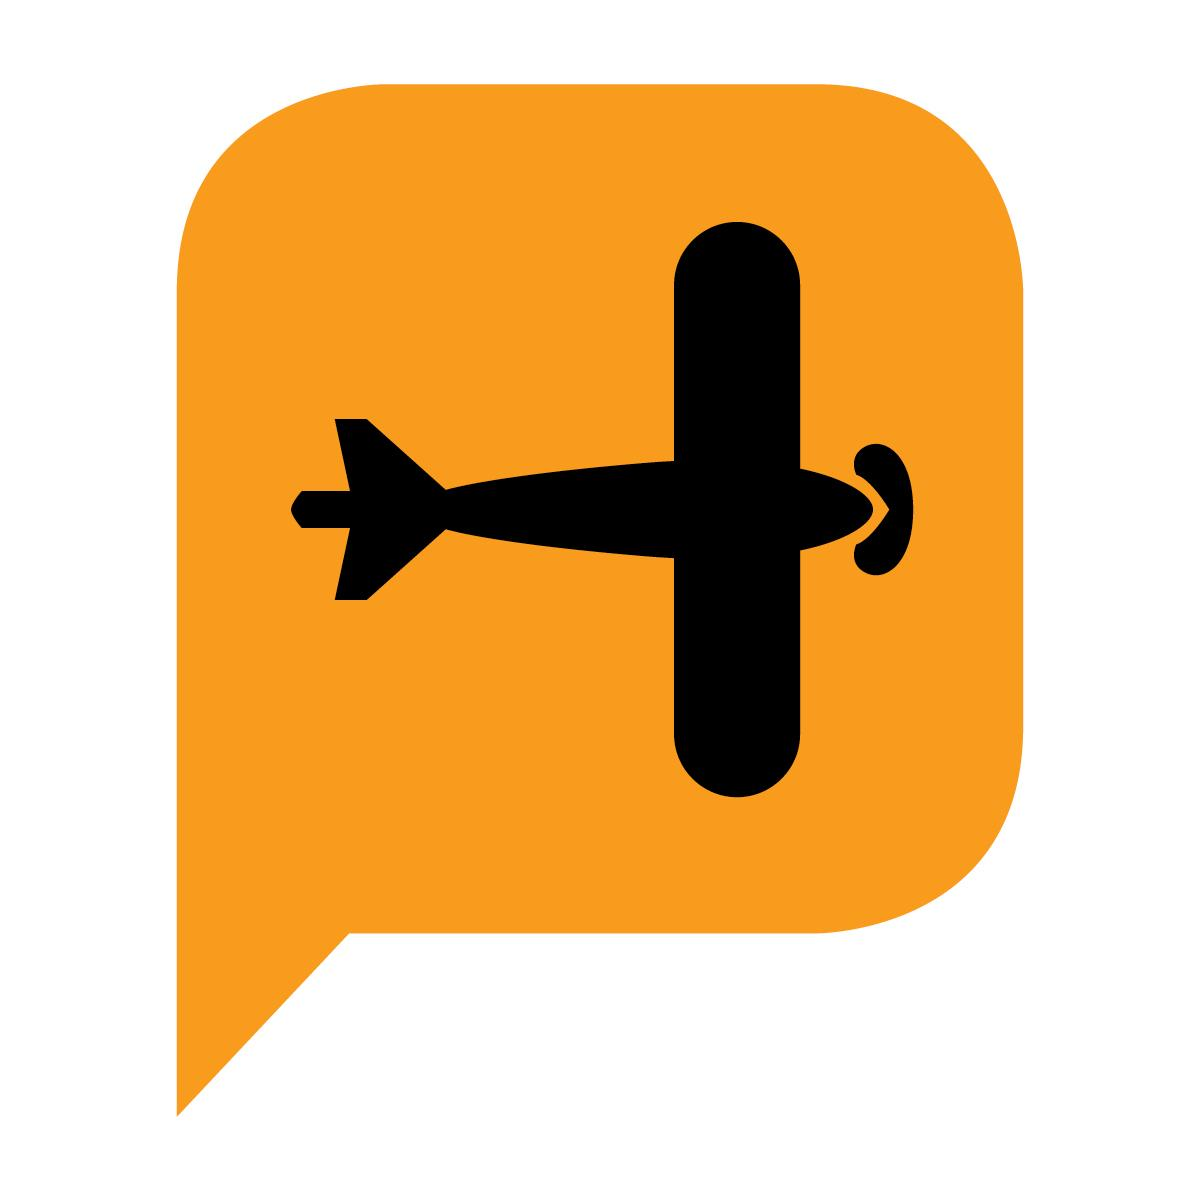 Check out the LAX Flight Path Learning Center & Museum!Discover vintage planes and